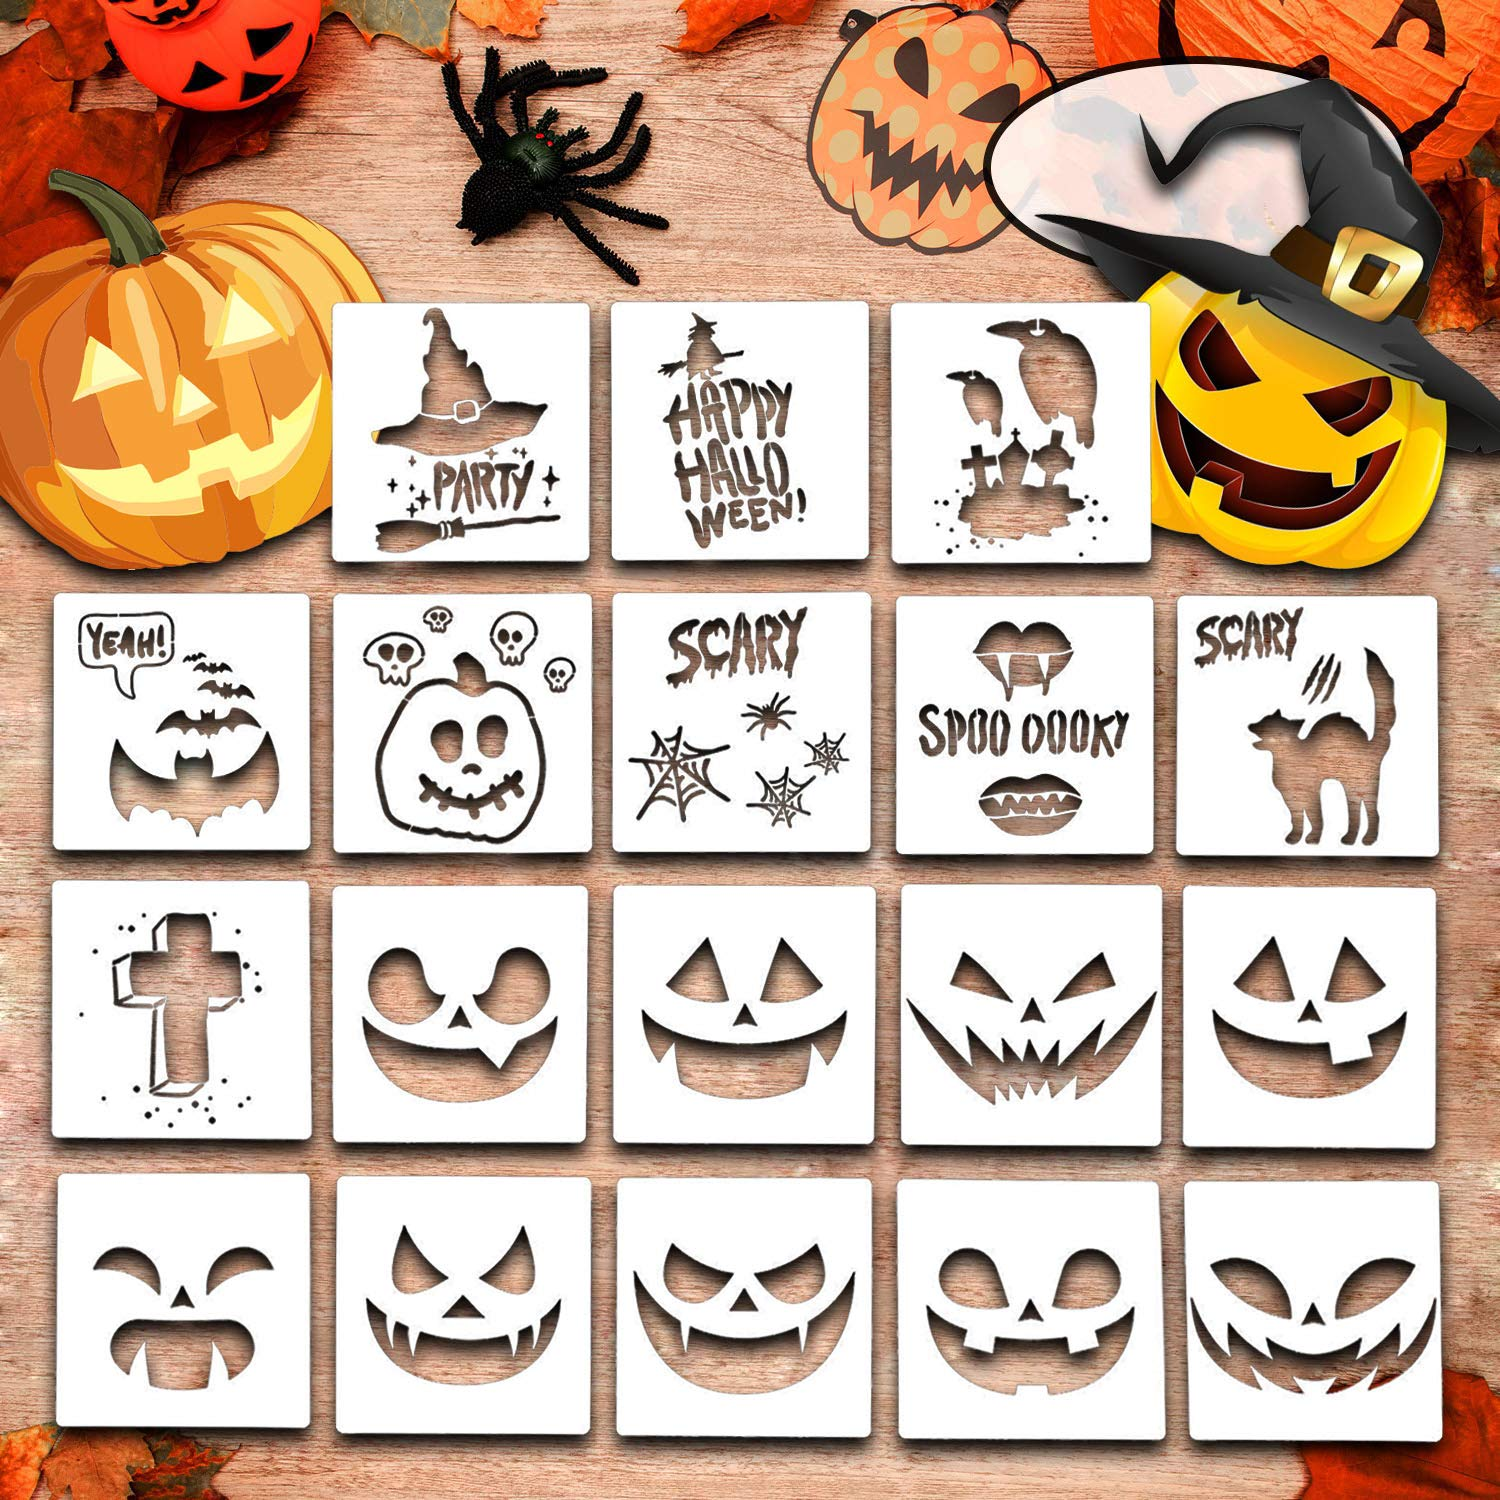 Halloween Stencils for Painting, 20 Pack Plastic Painting Stencils, Reusable Pumpkin Expression Templates for DIY Card, Craft Art Drawing Painting Spraying, Window (Halloween Stencils) by Showvigor